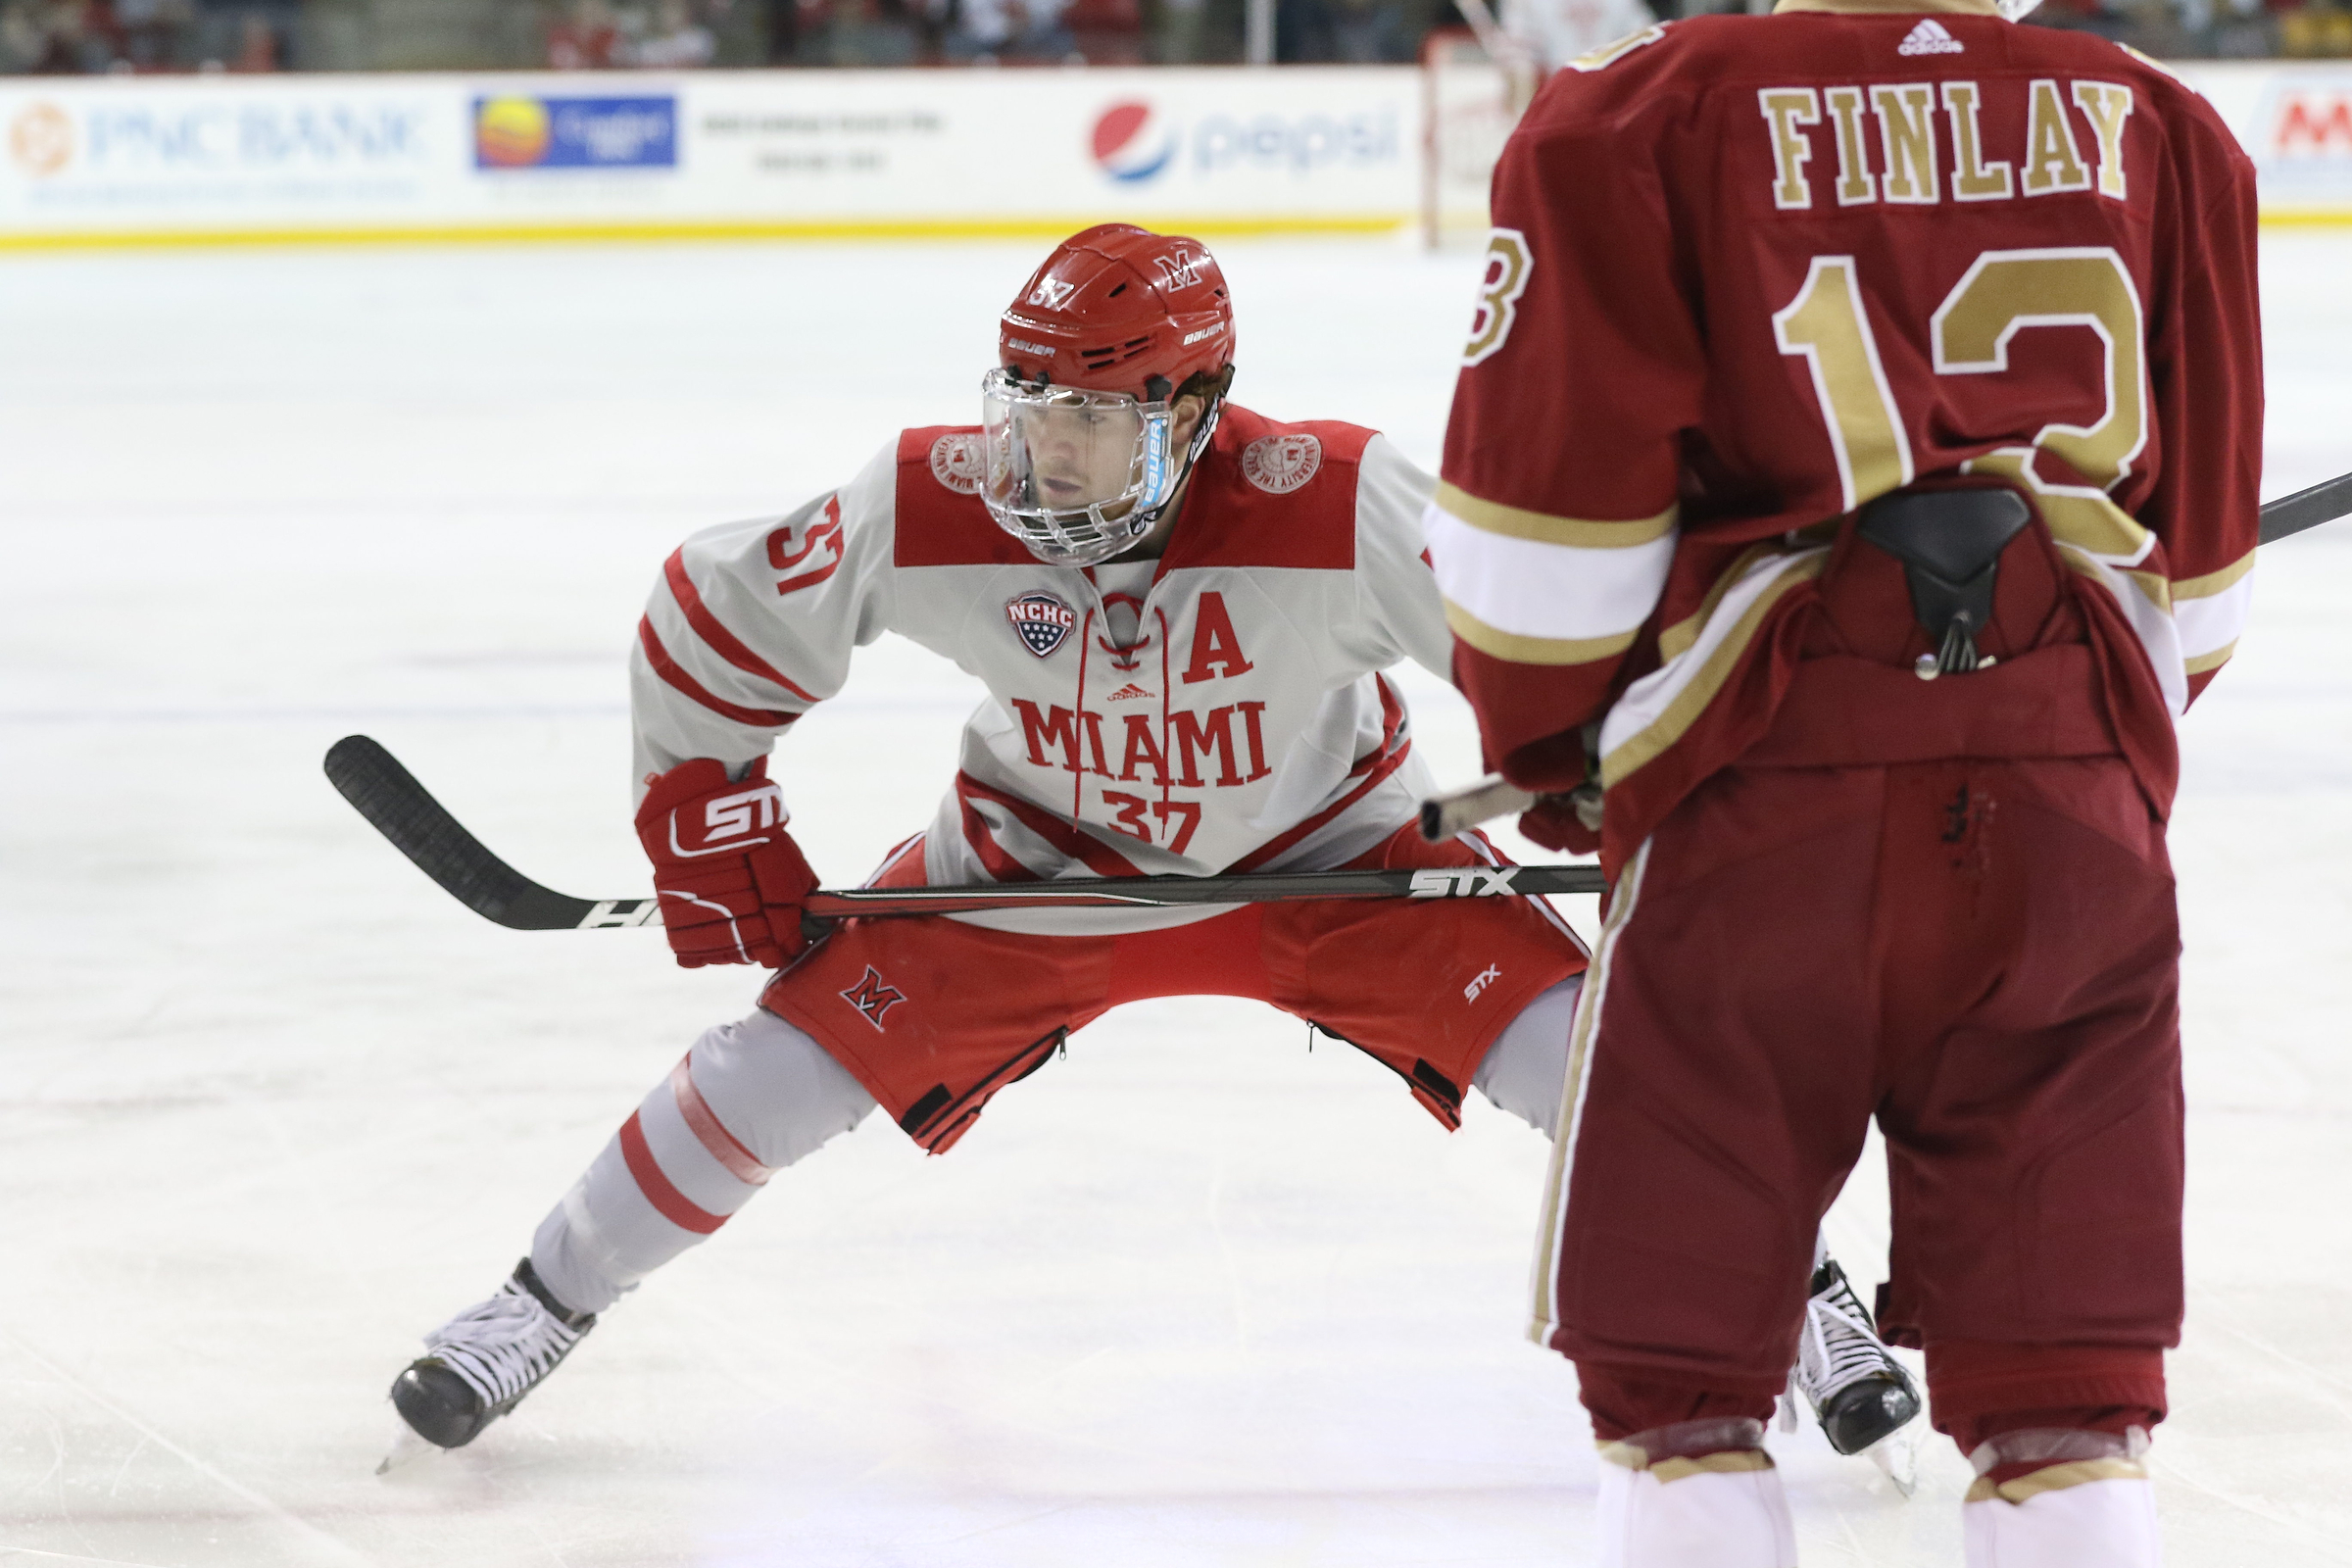 Miami Hockey Cracks National Rankings - Miami University RedHawks b3d5c31adf3